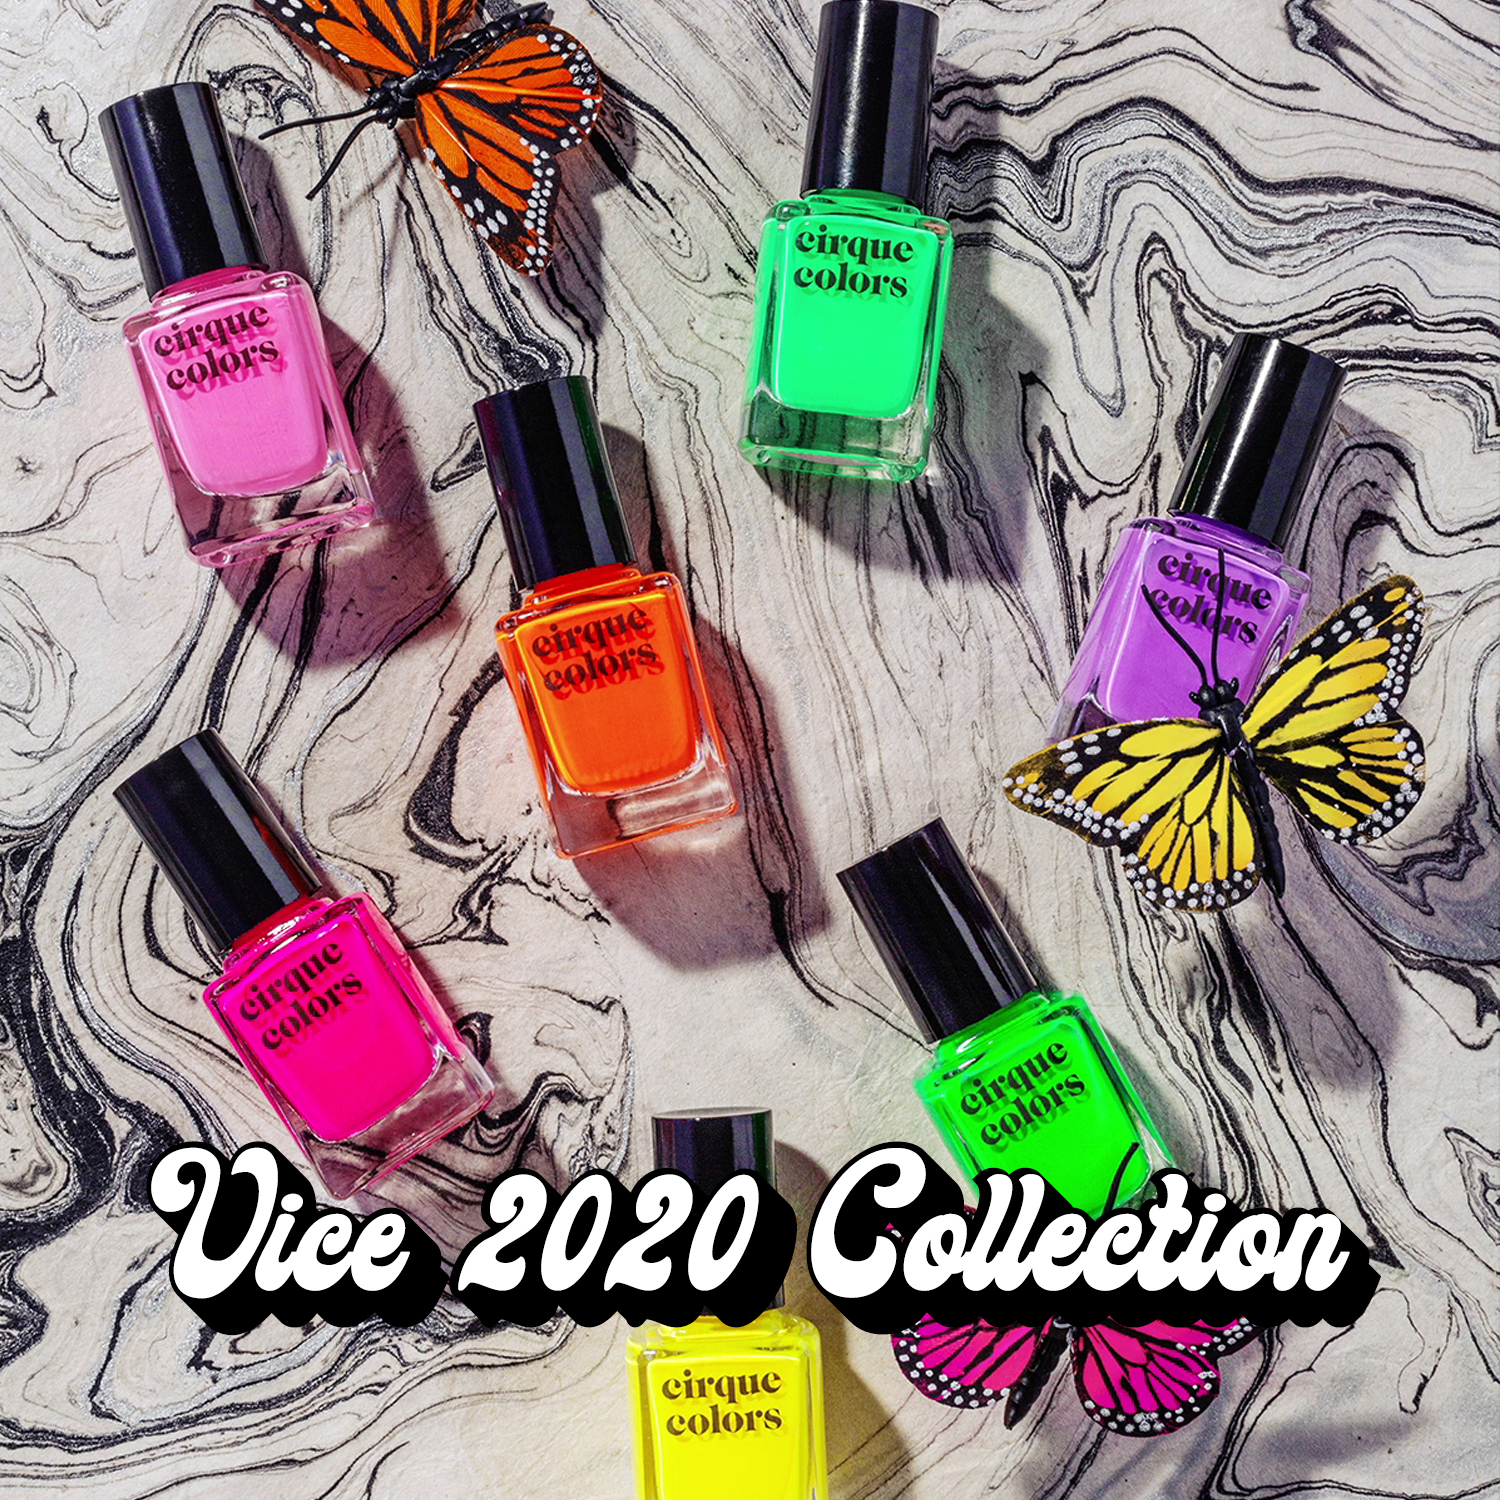 Vice 2020 Collection